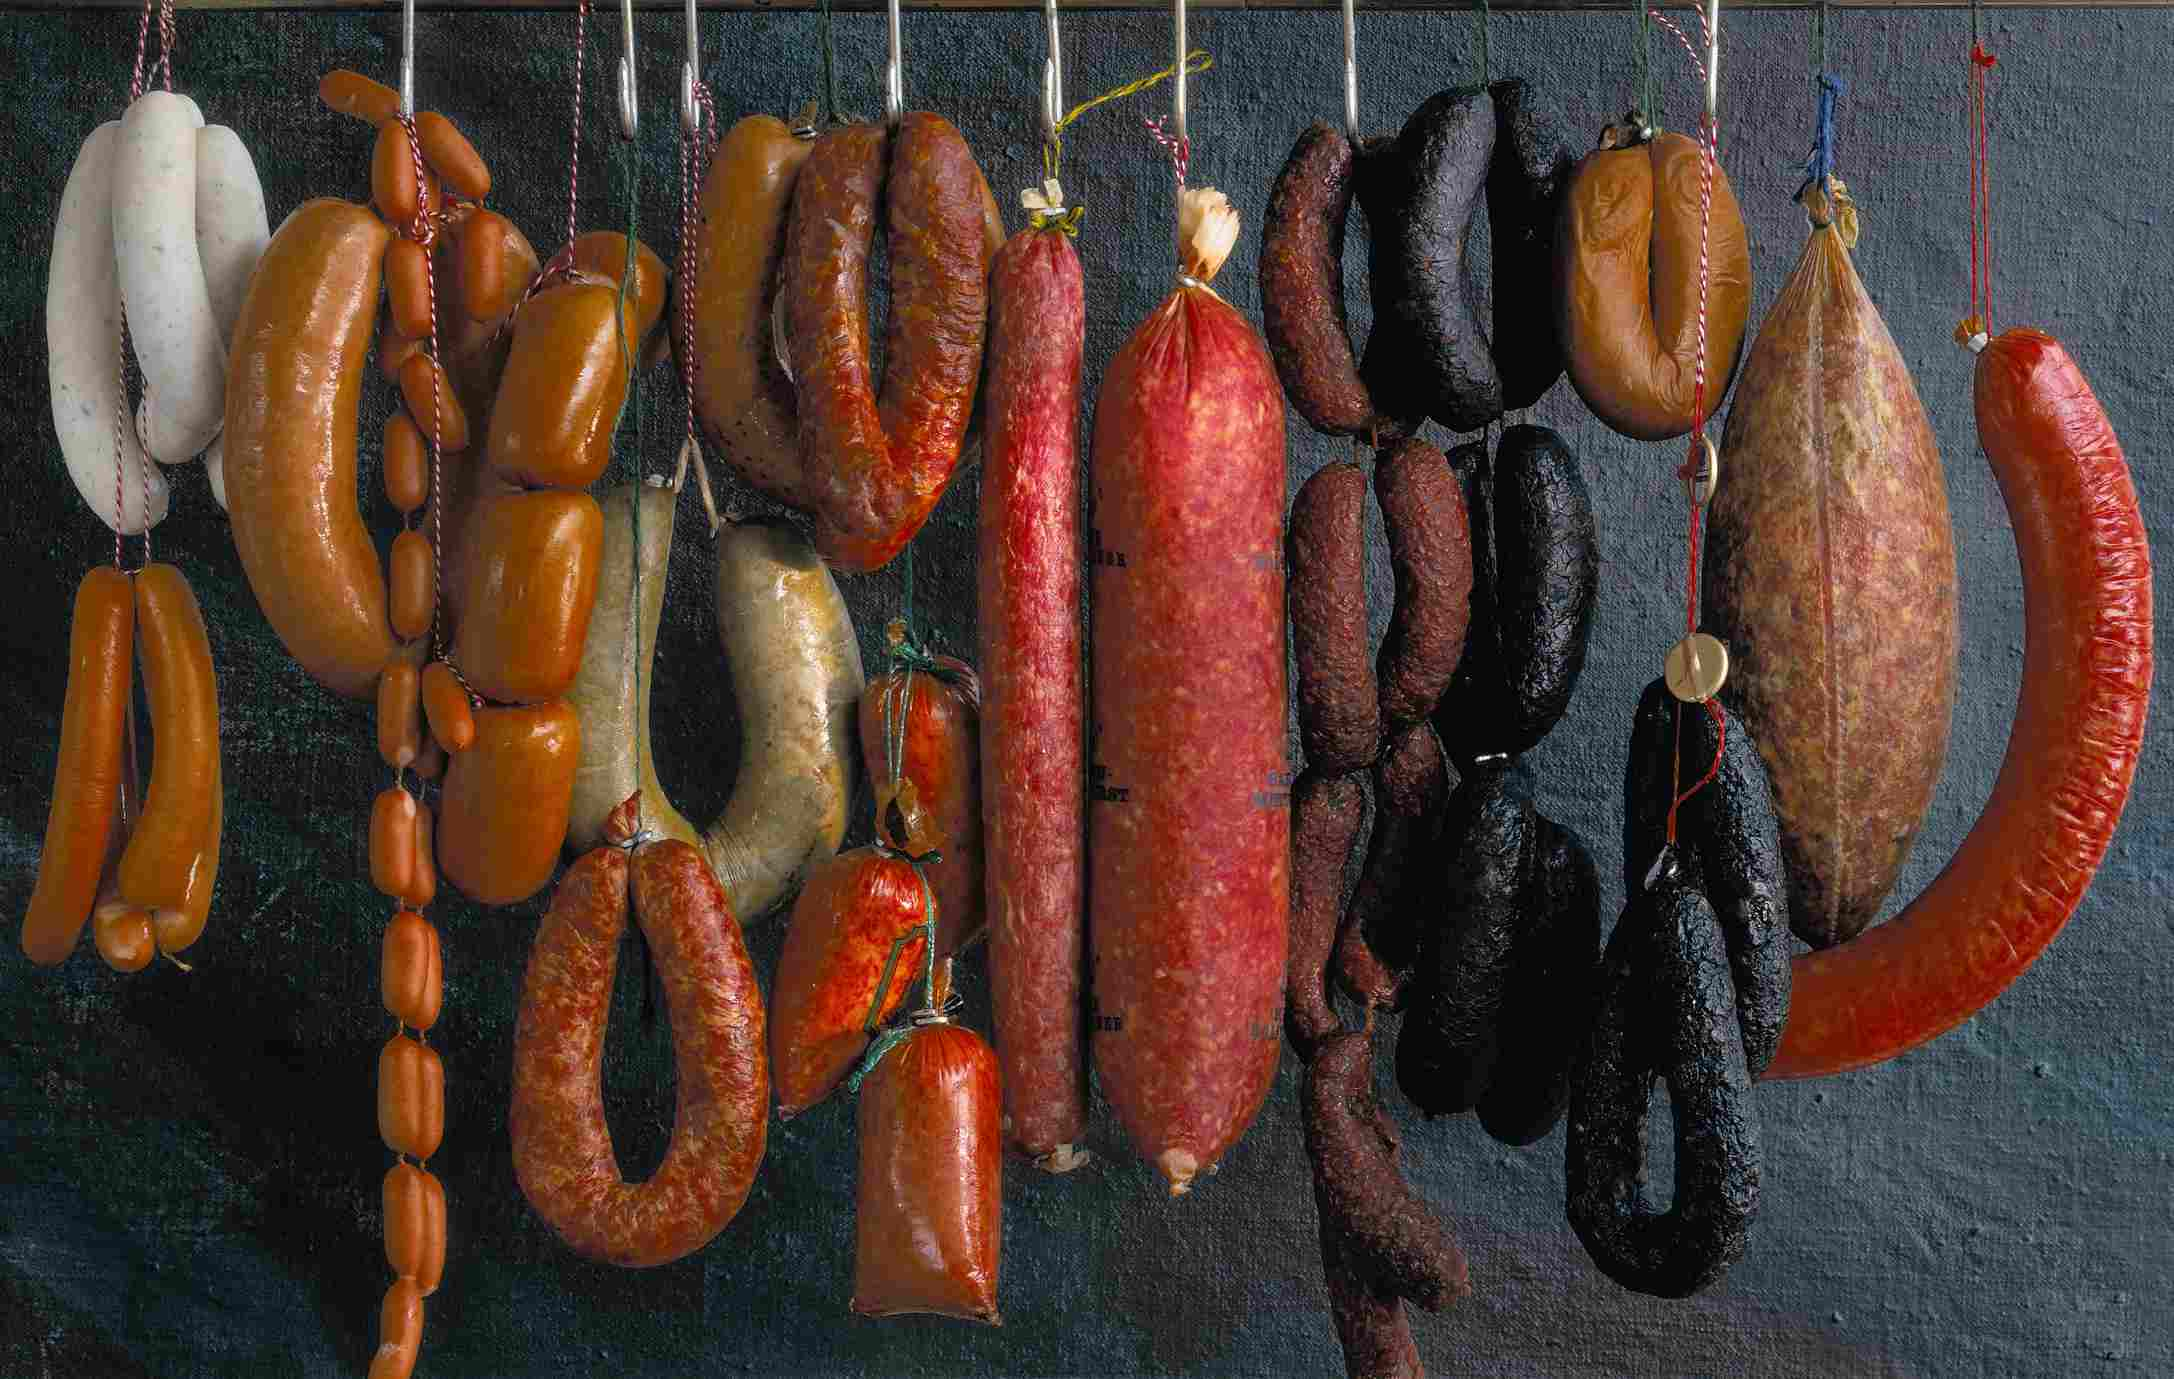 Types of sausages